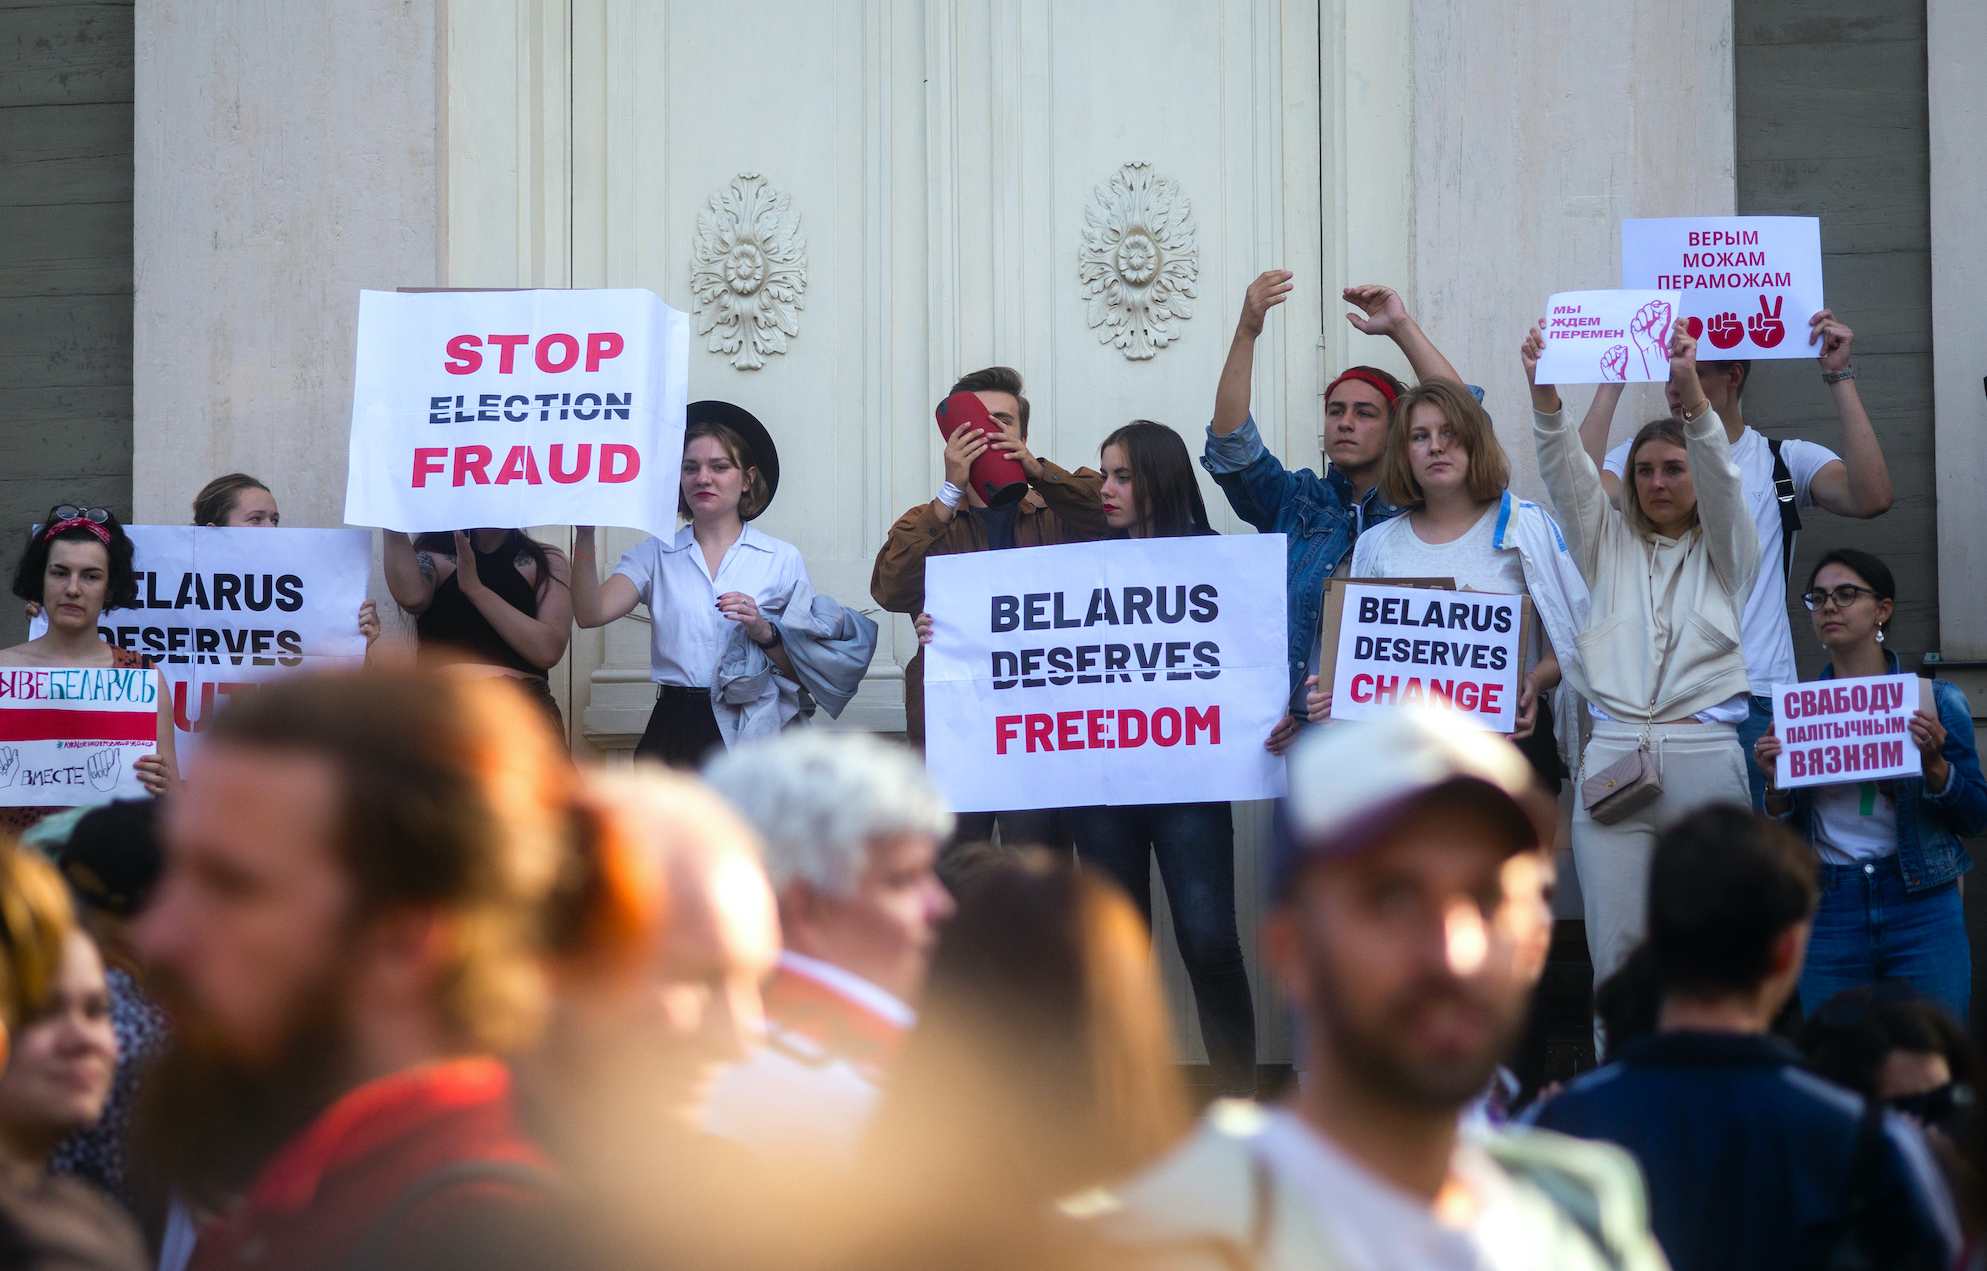 Protesters gather in Riga, Latvia to show solidarity with the people of Belarus in August 2020. (Image credit: Girts Ragelis / Shutterstock.com)